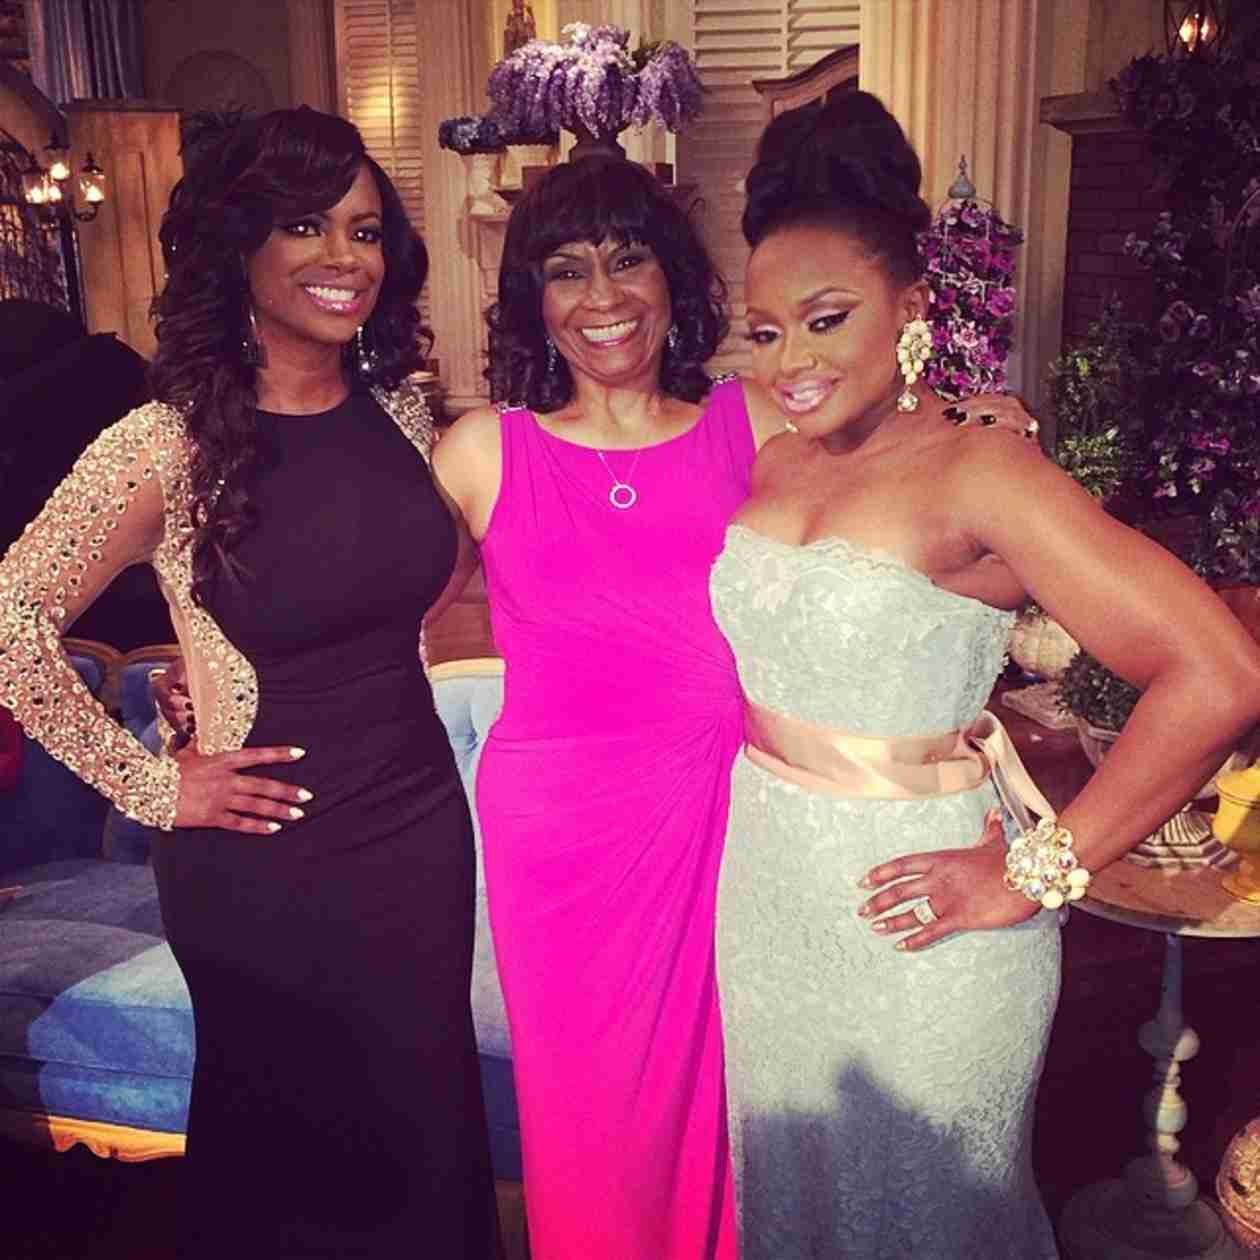 Kandi Burruss Shares Throwback of Young Mama Joyce — See It Here! (PHOTO)